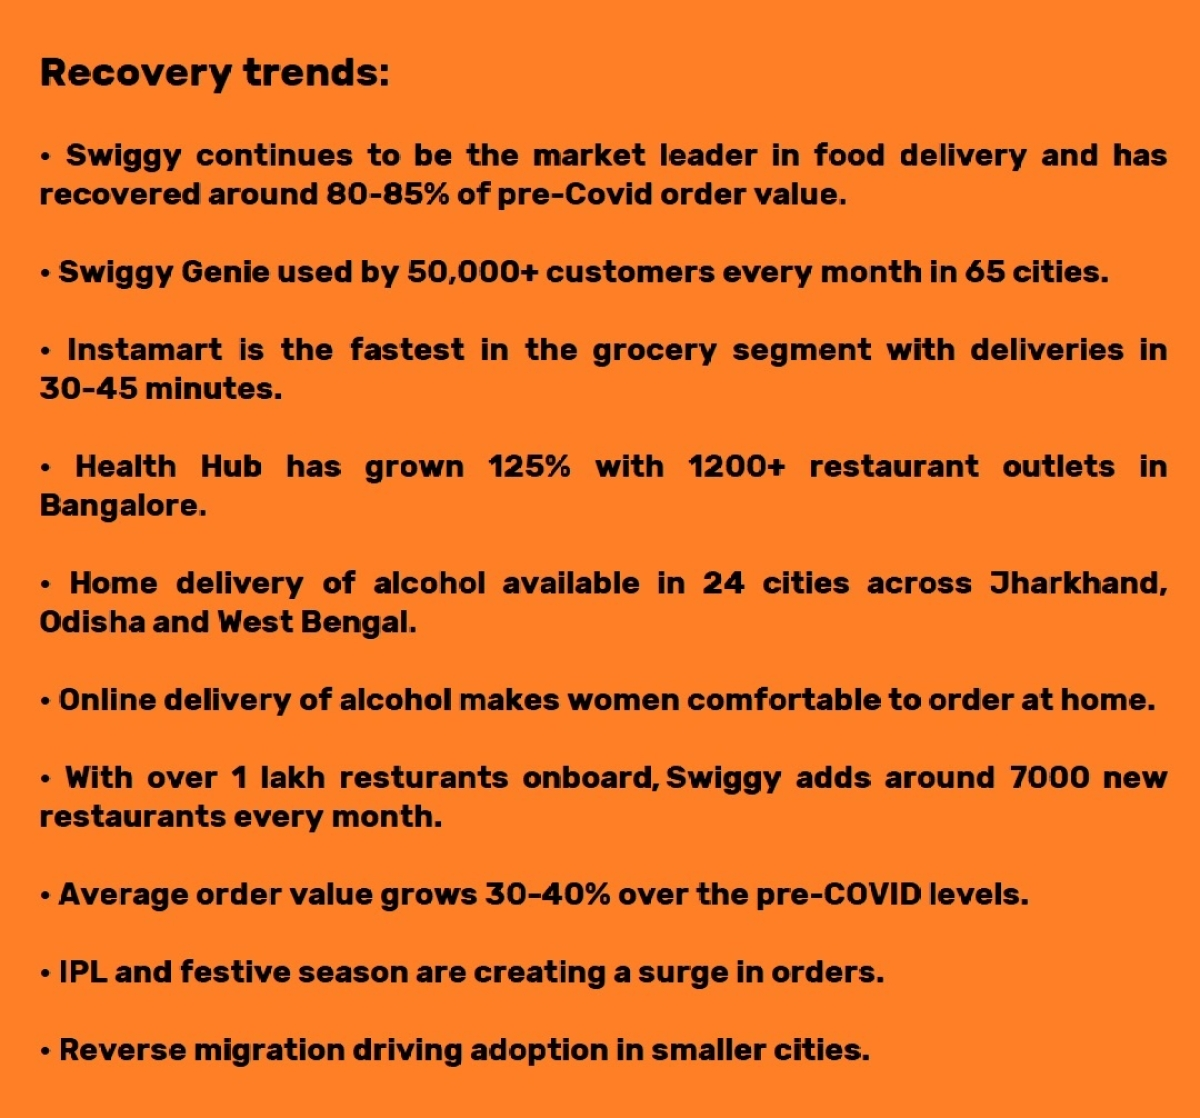 Recovery trends